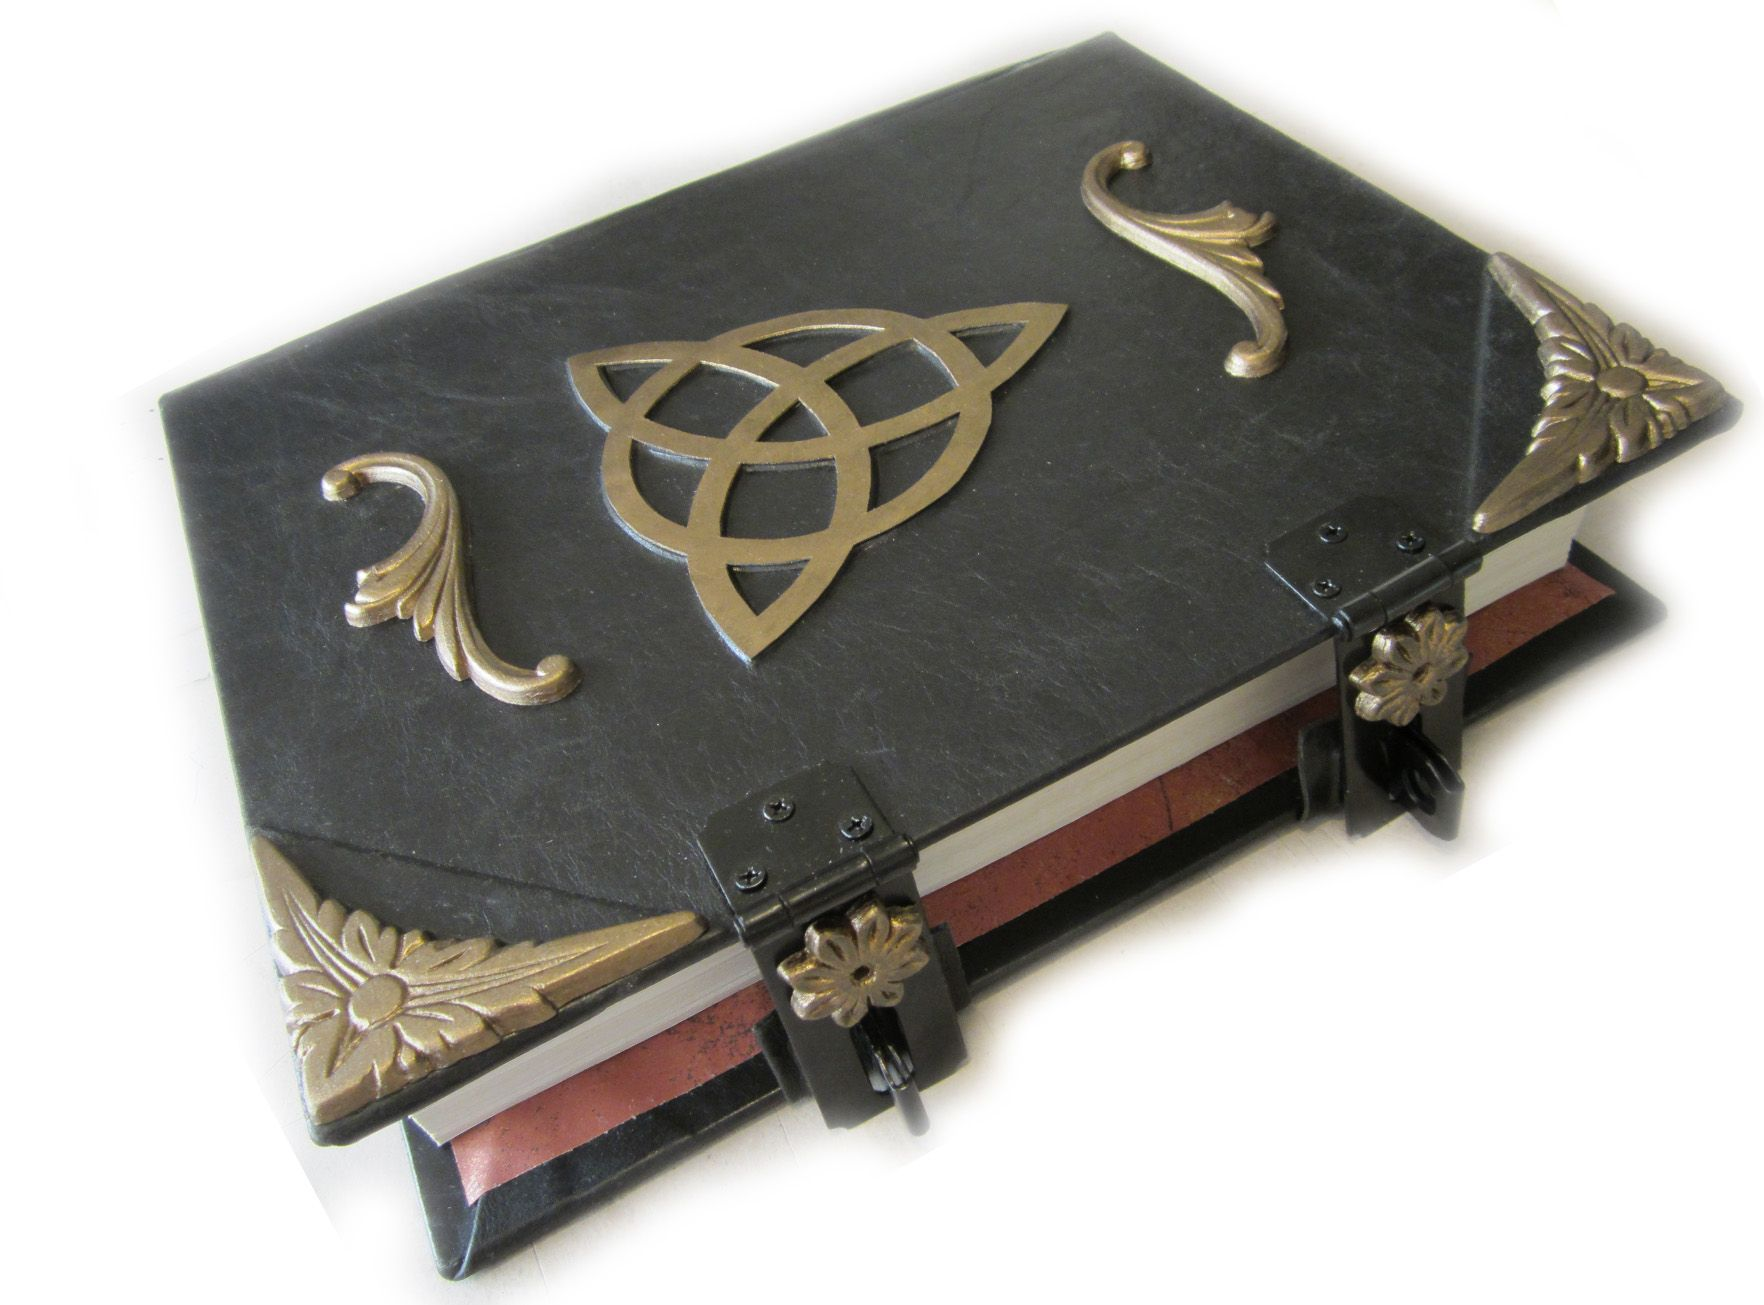 9 best book of shadows images on pinterest book of shadows custom made triquetra book of shadows with golden embellishments and latches fandeluxe Document